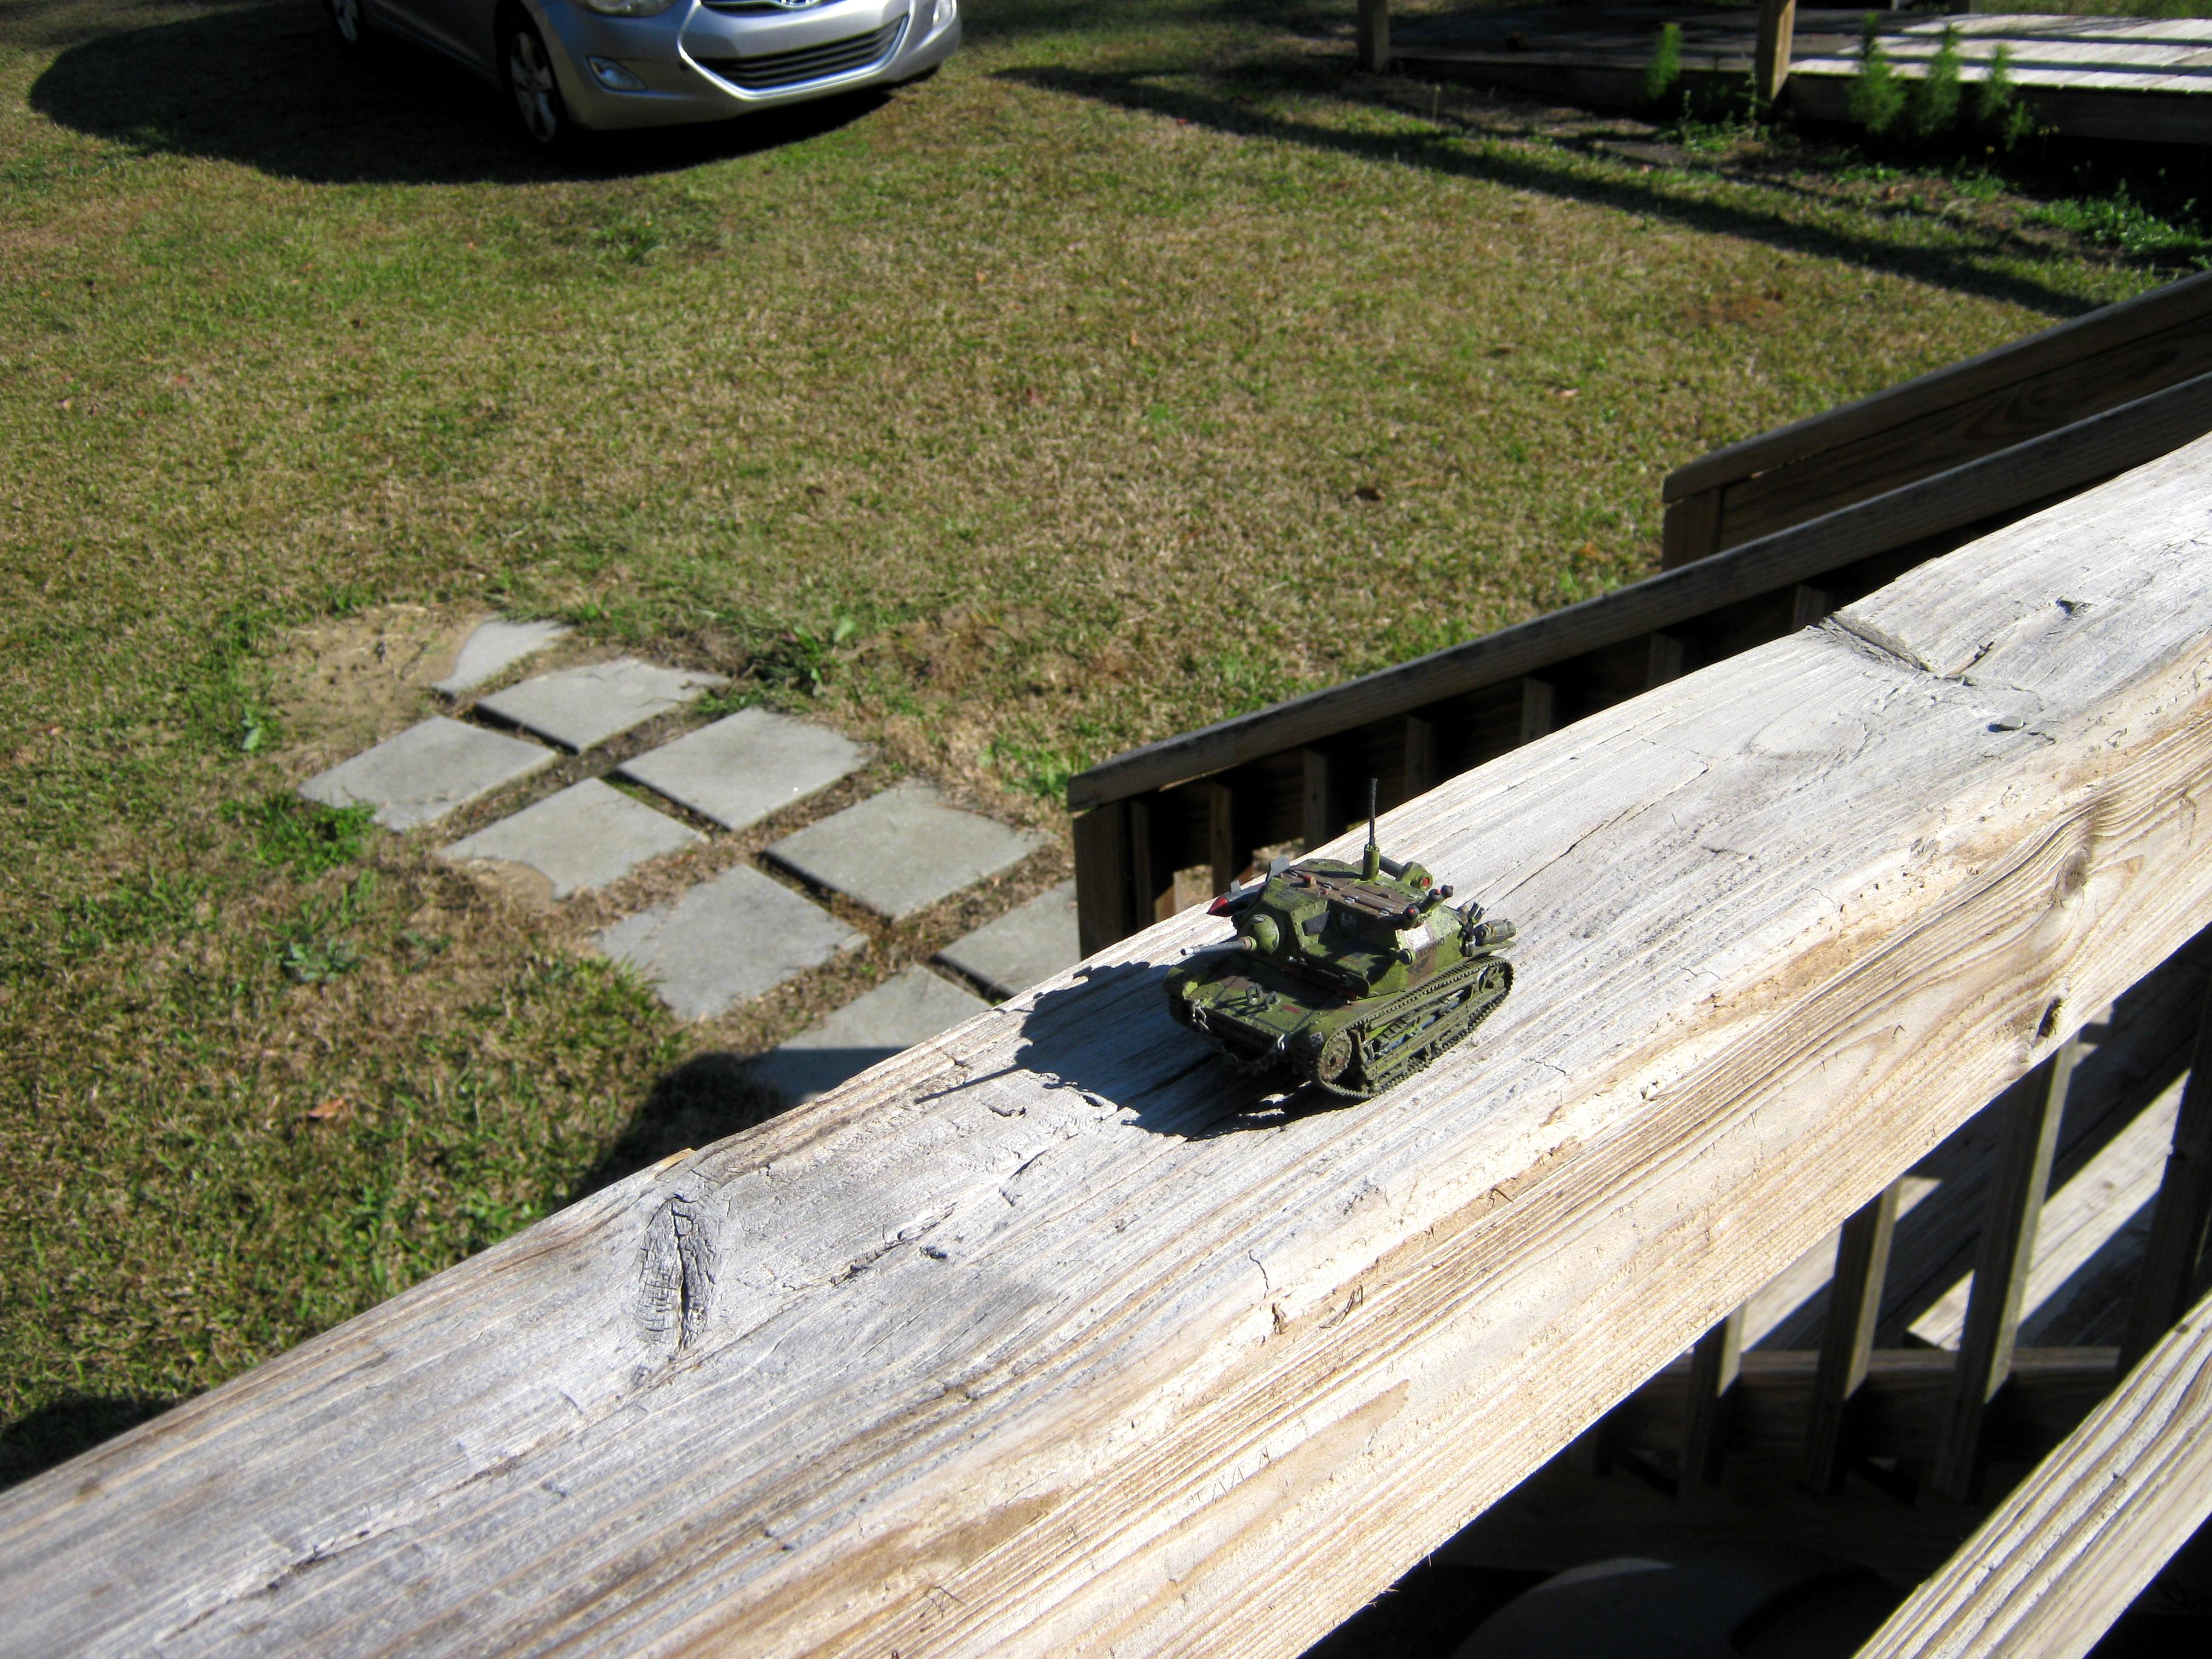 Conversion, Counts As, Imperial, Light Vehicle, Poland, Polish, Prototype, Recon Vehicle, Scout Vehicle, Tank, Tankette, Tks, World War Two